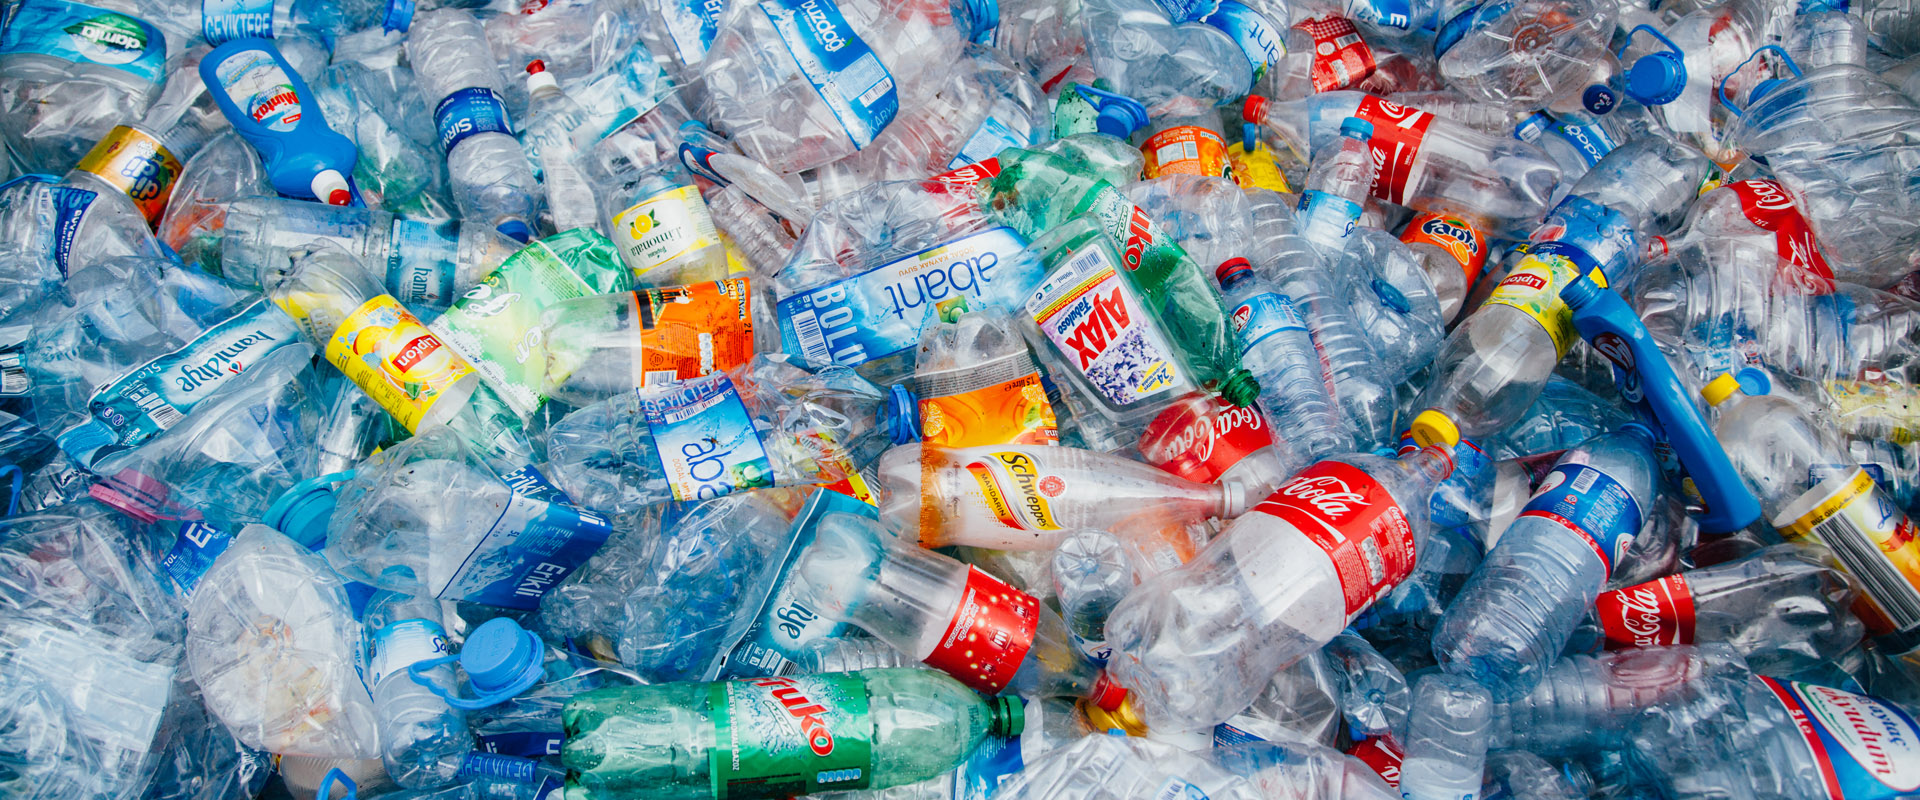 4b9d2a699b Is it possible to ban plastic water bottles?